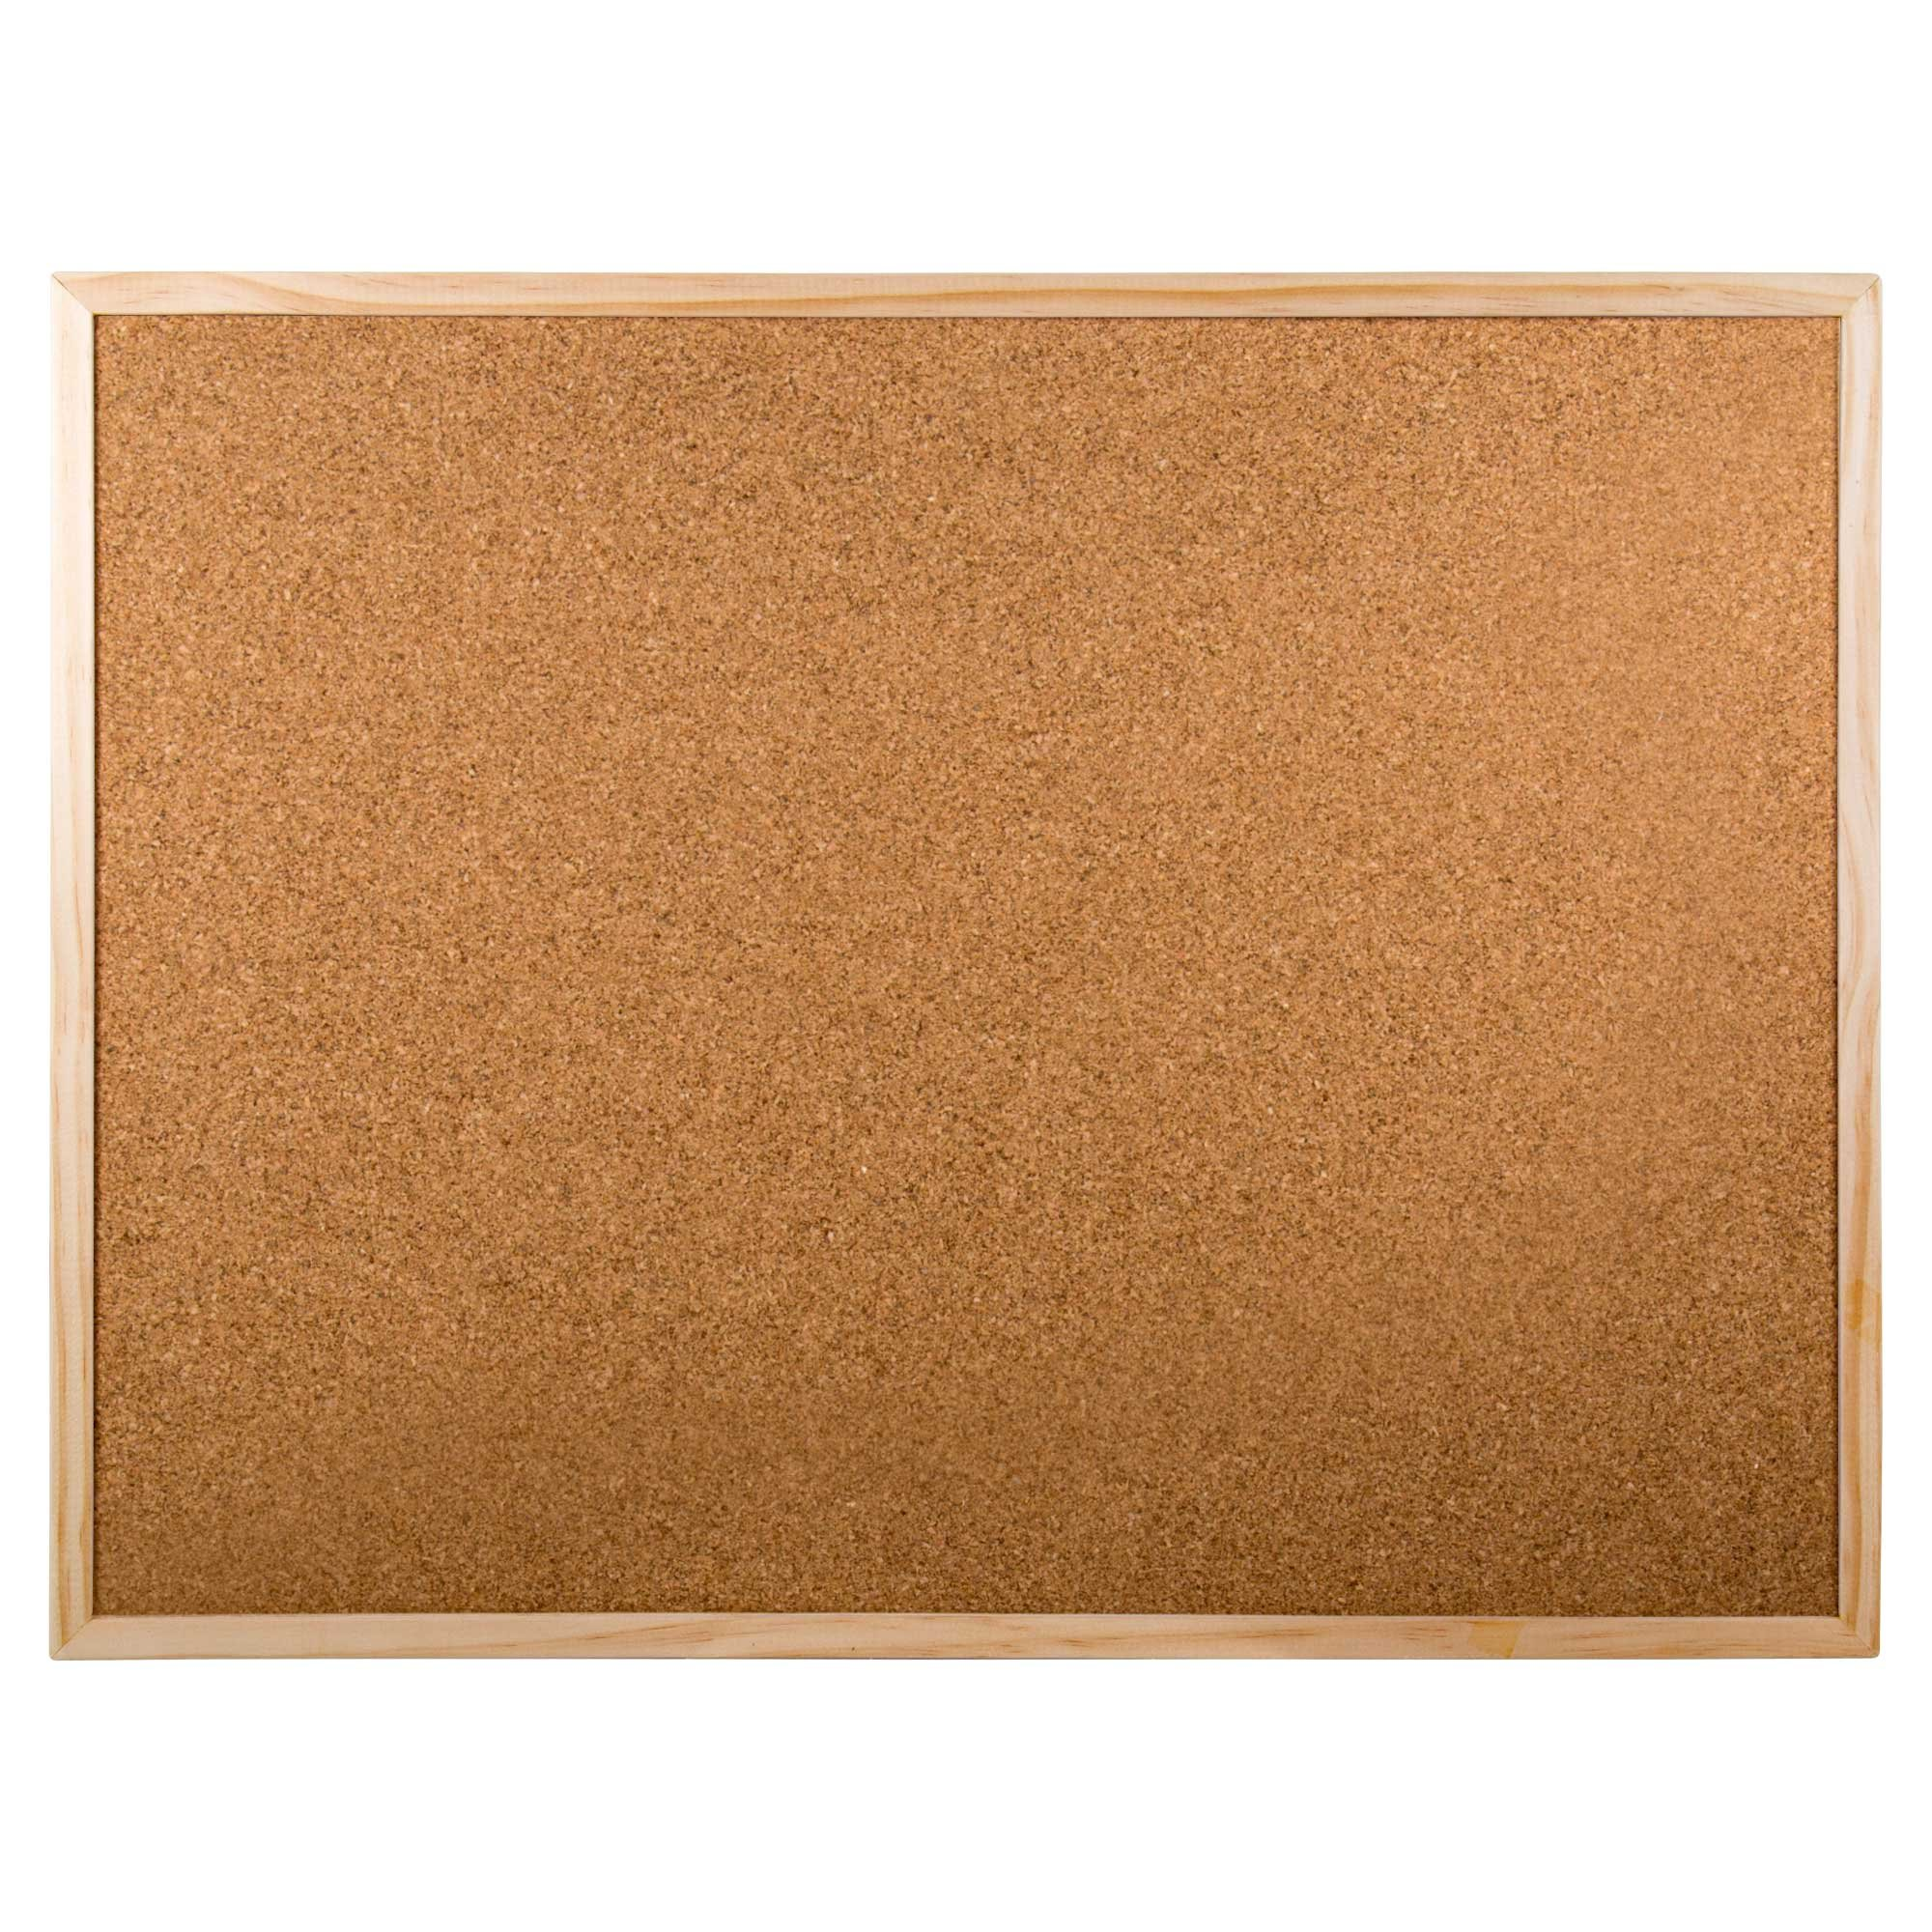 Office Works, Cork Board, 17 x 23 inches, Beige